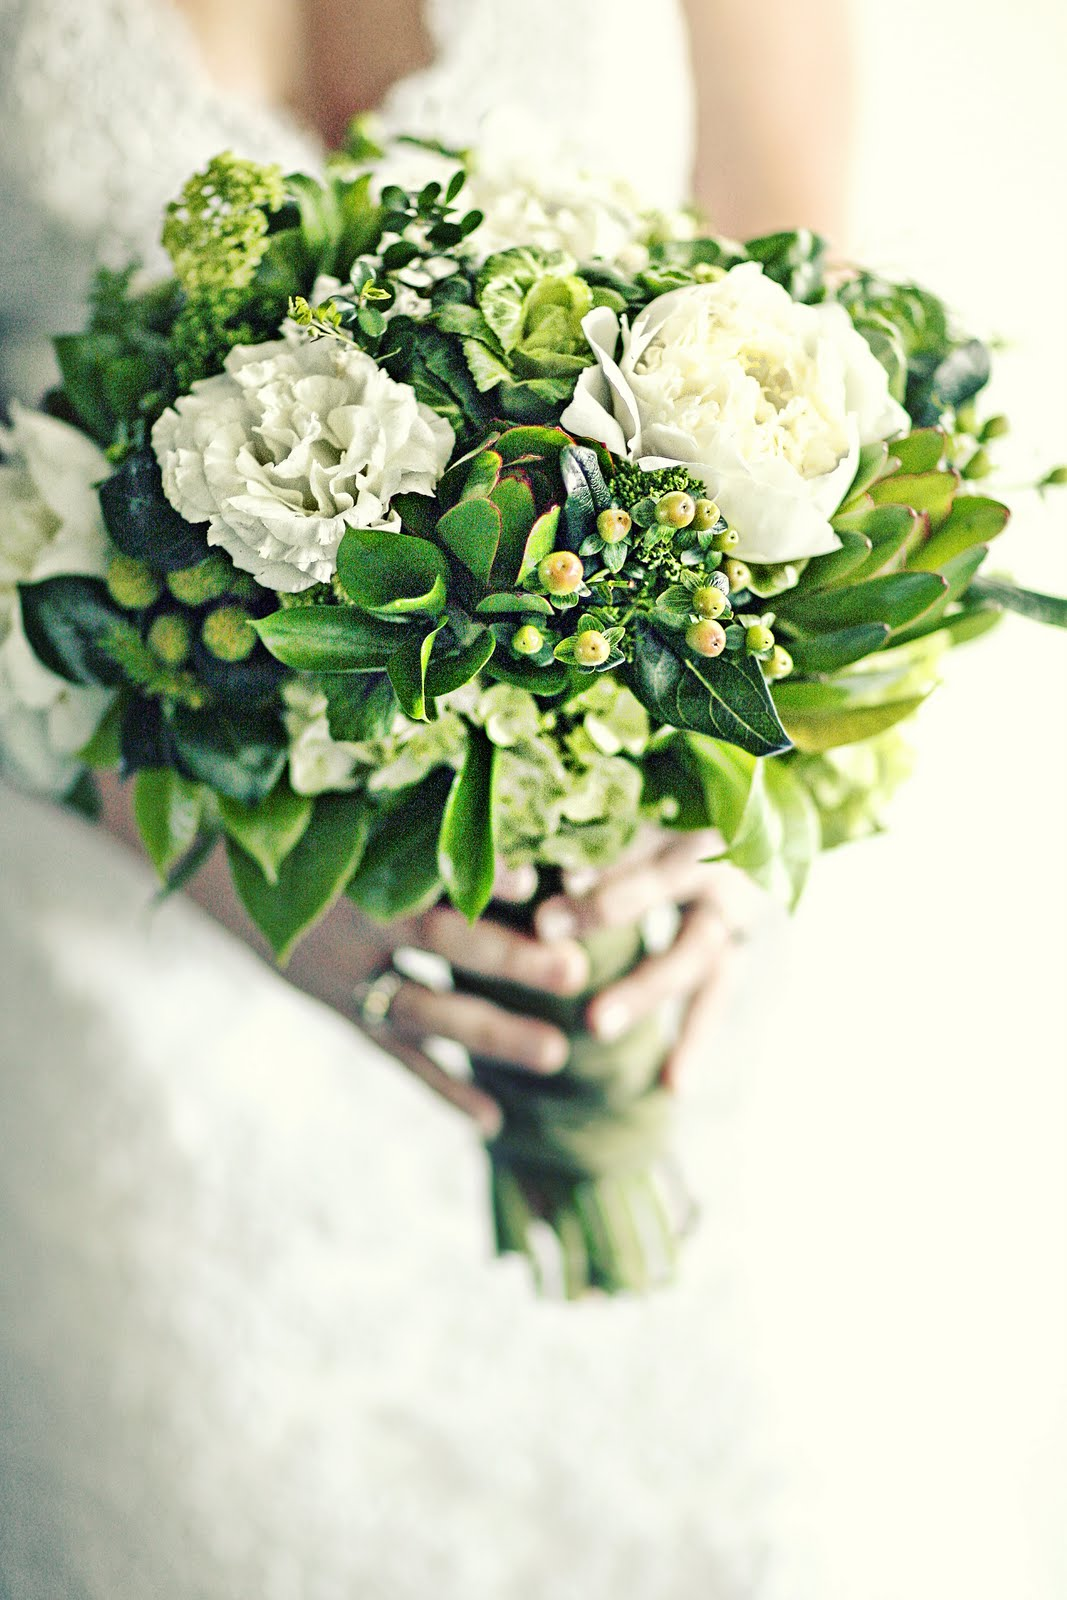 Wedding Flowers Italian Wedding Flowers Via Wedding Flowers Photo